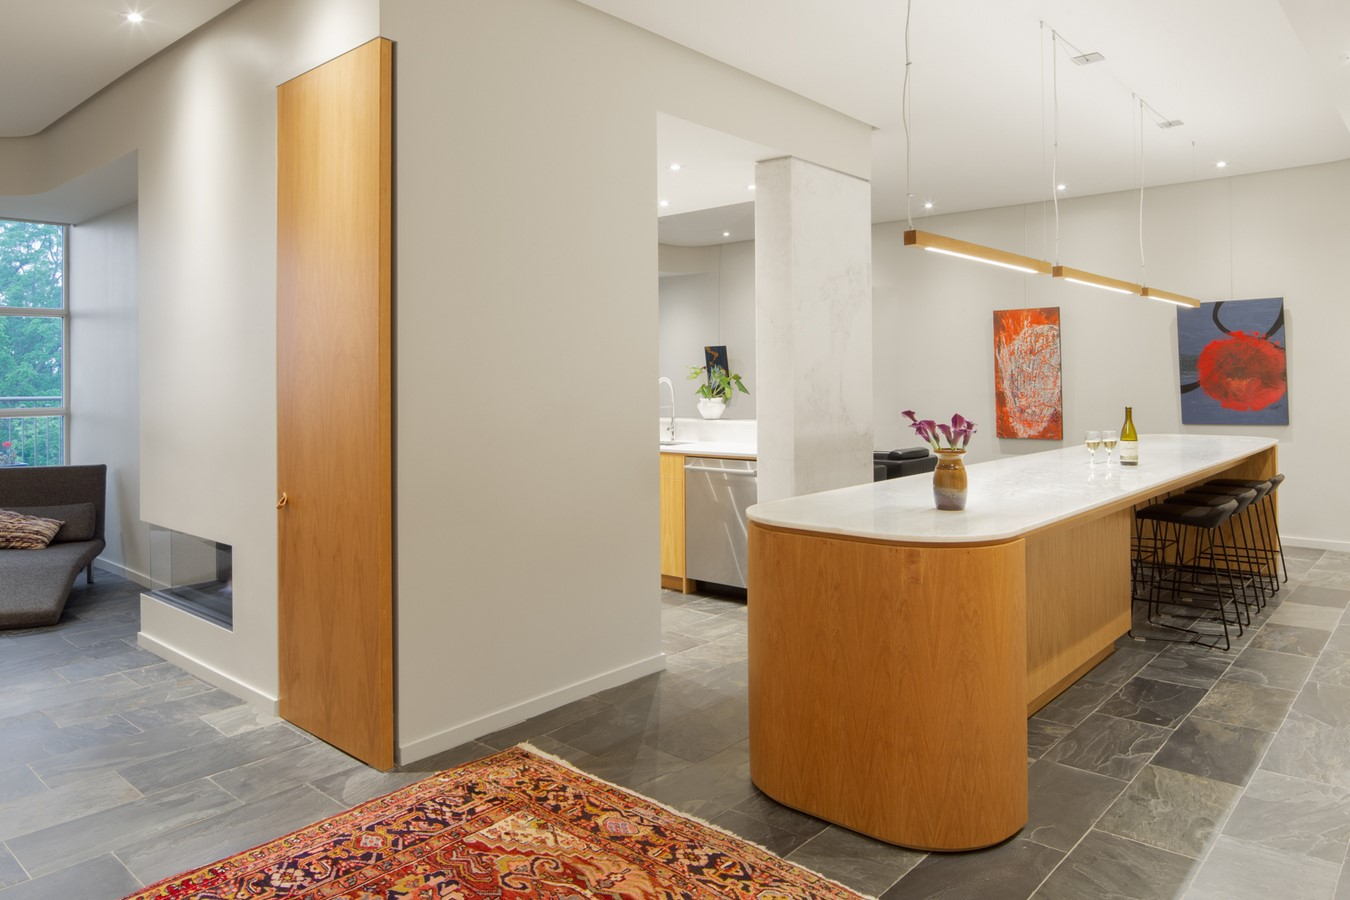 5112 Family Pied-à-terre by Weiss Architecture & Urbanism: Sheet 1